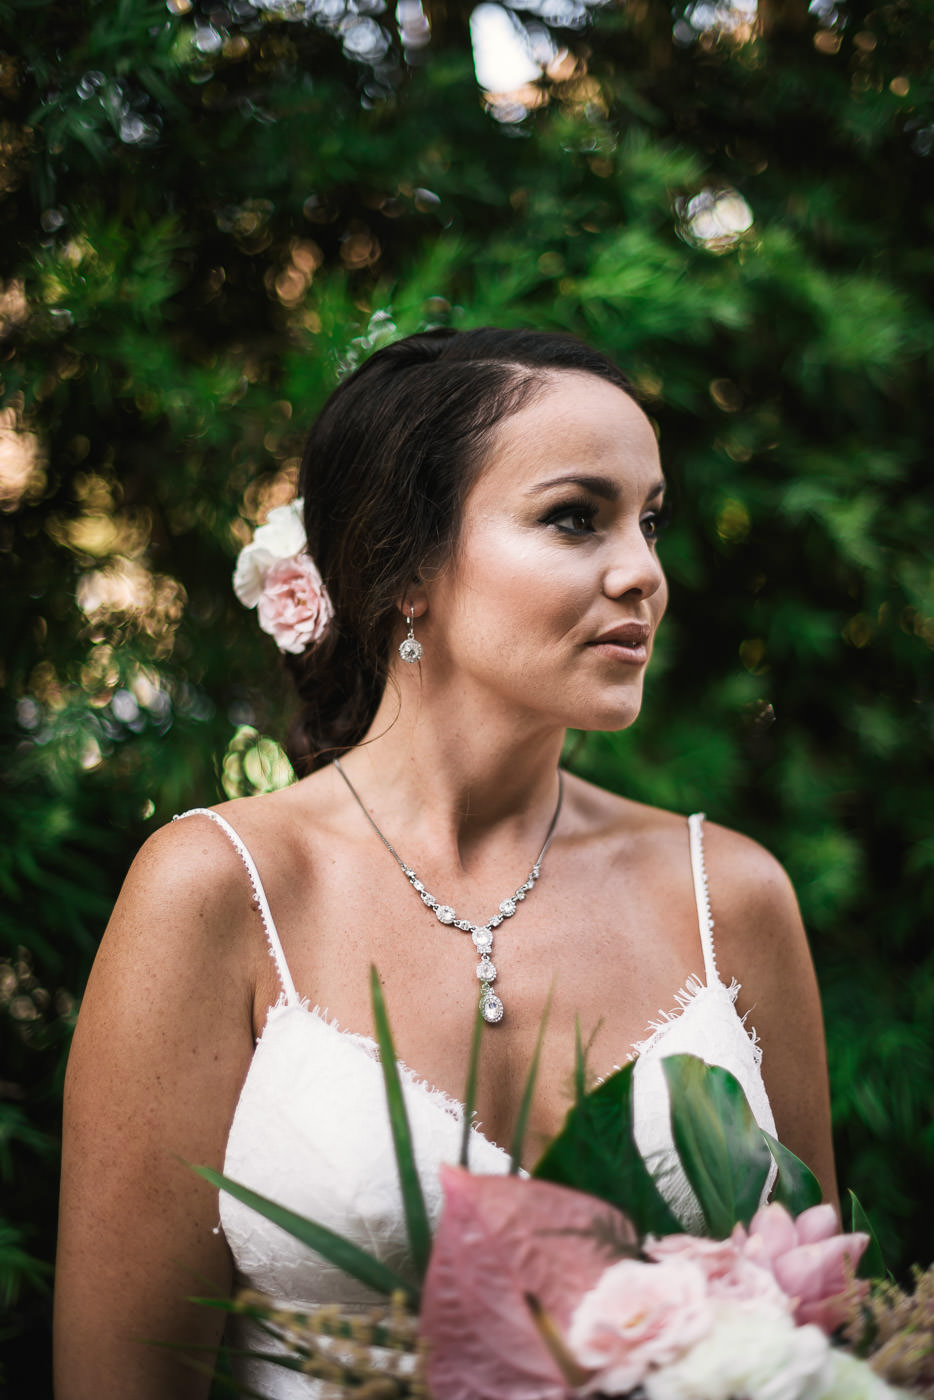 Beautiful portrait of a bride in front of green folliage.